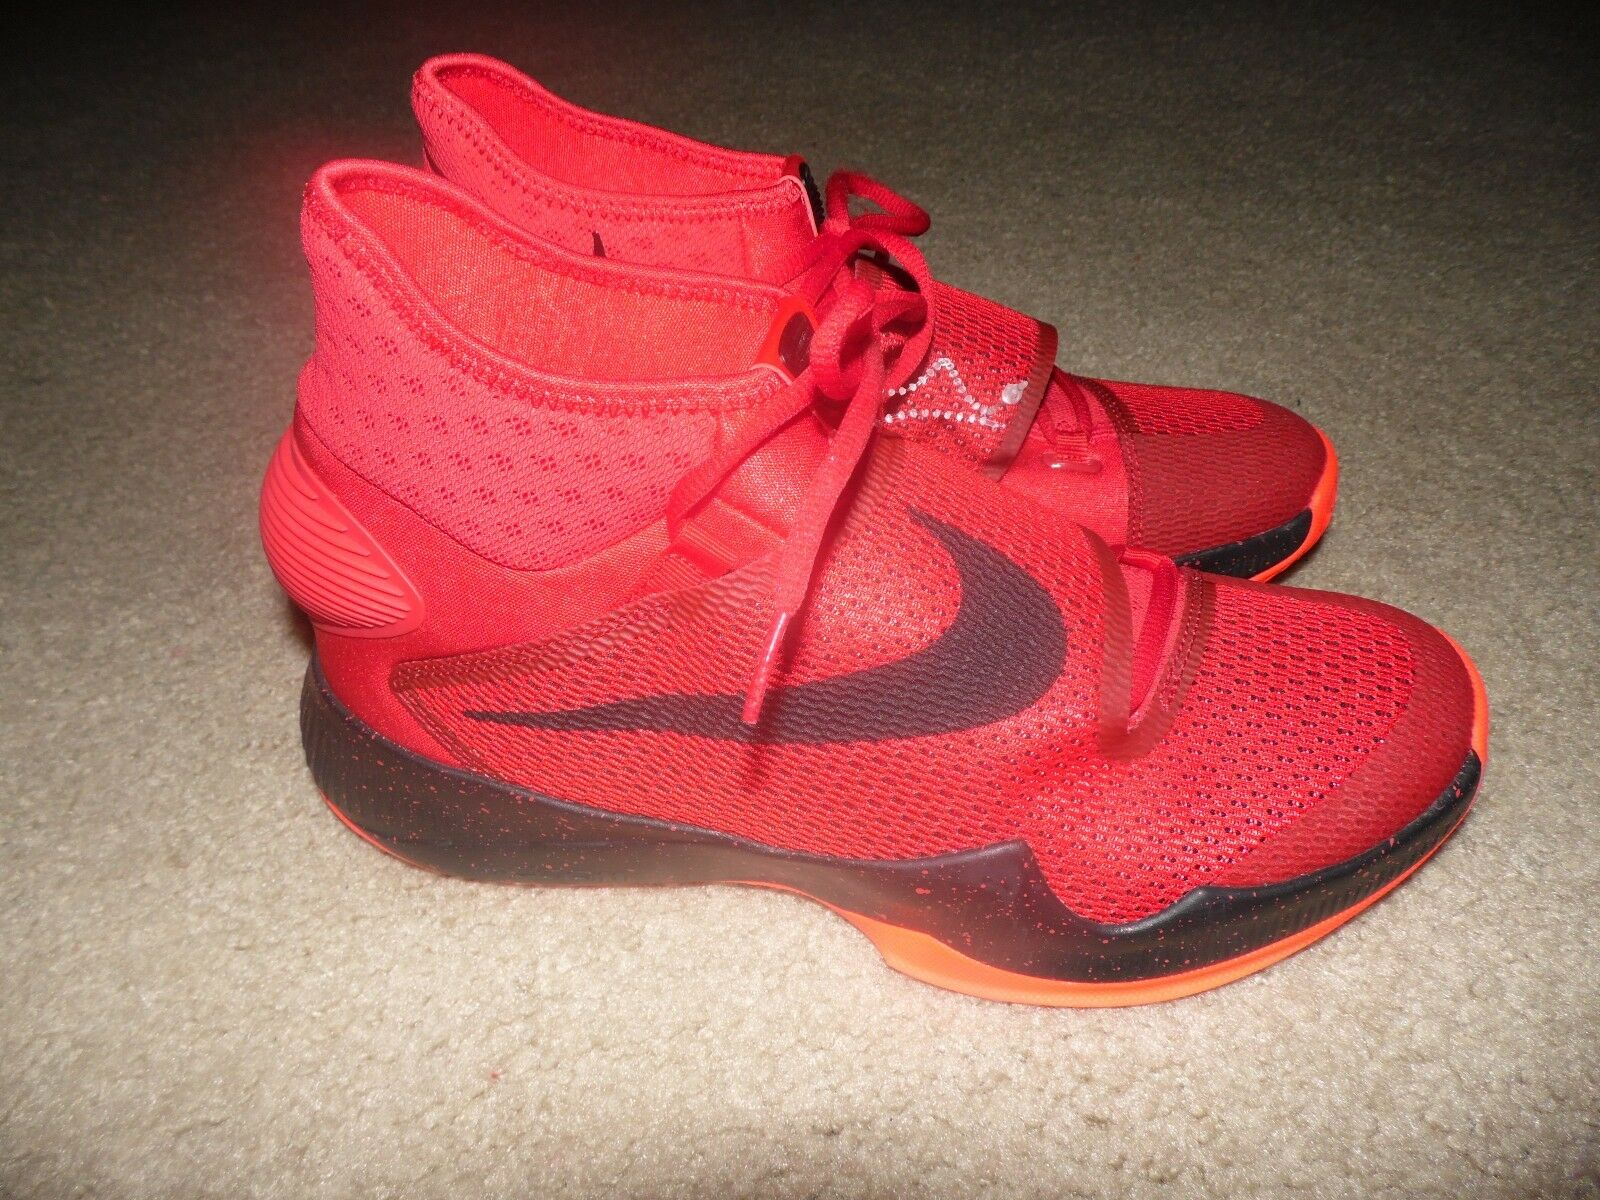 New Sz 11 Uomo Nike Zoom HYPERREV University Red Red Red Bright Crimson Nero 820224-660 48b9f0